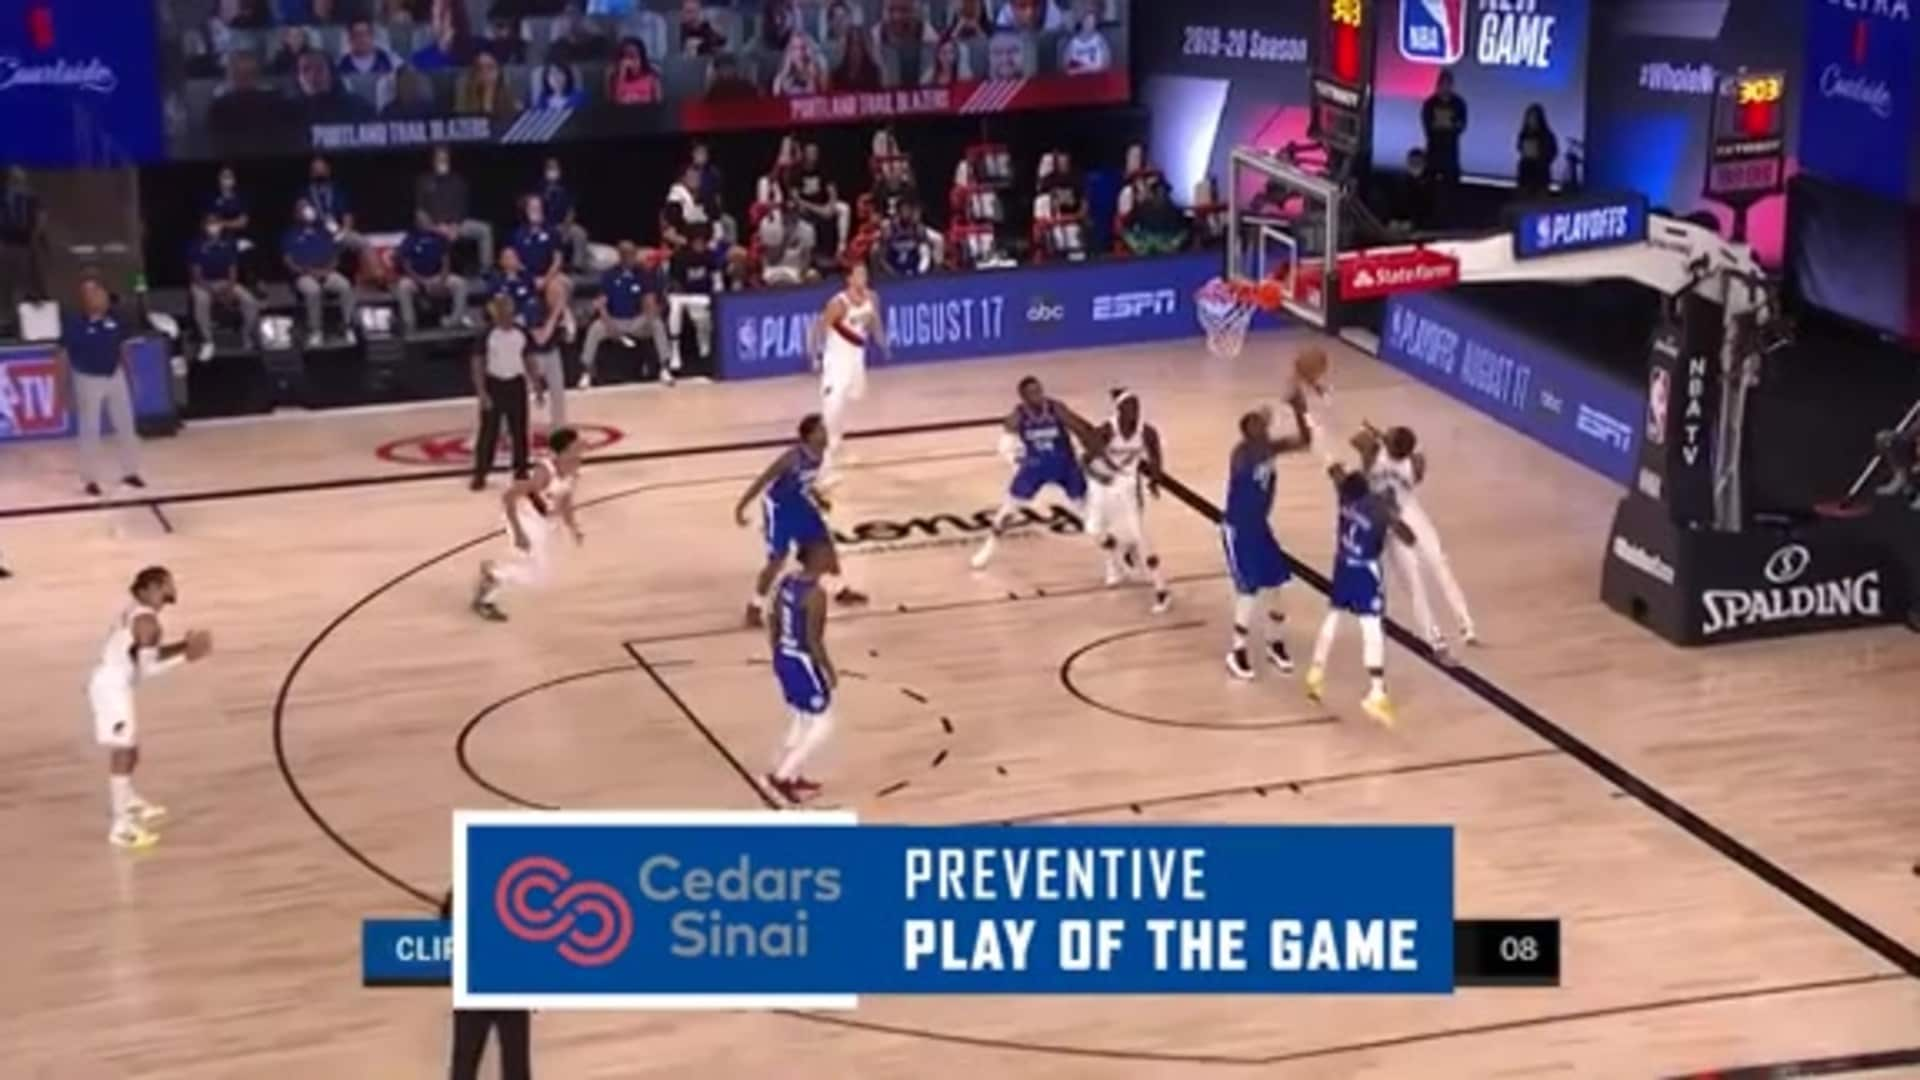 Cedars-Sinai Preventive Play of the Game | Clippers vs. Trail Blazers (08.08.20)